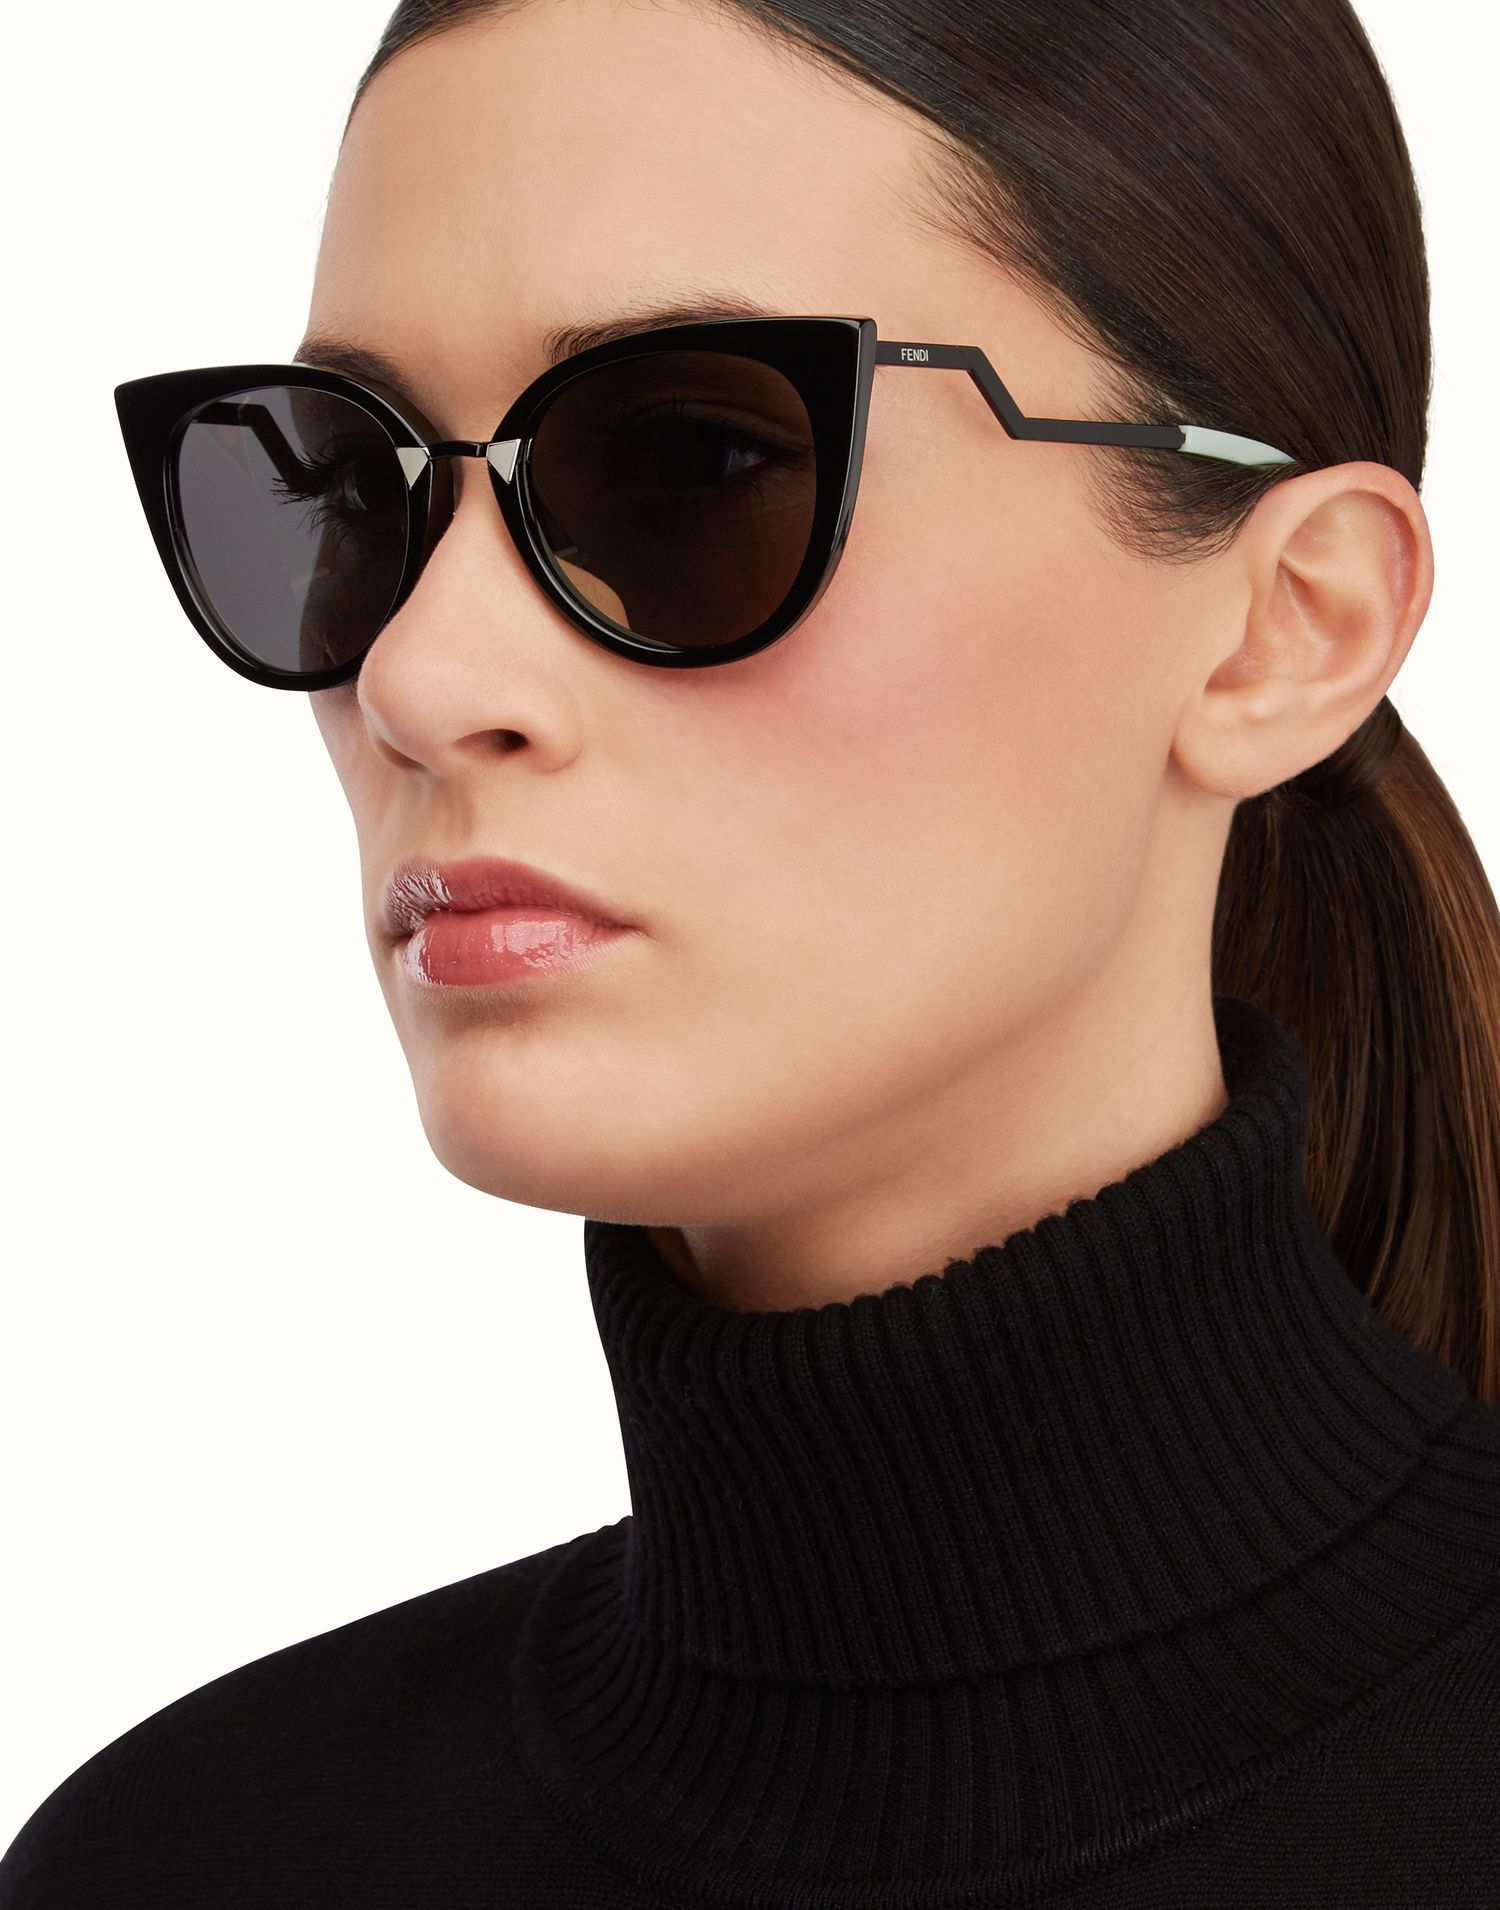 Eye Cat 2019 Orchidea Fendi In Pinterest Sunglasses qgxEZCx5w